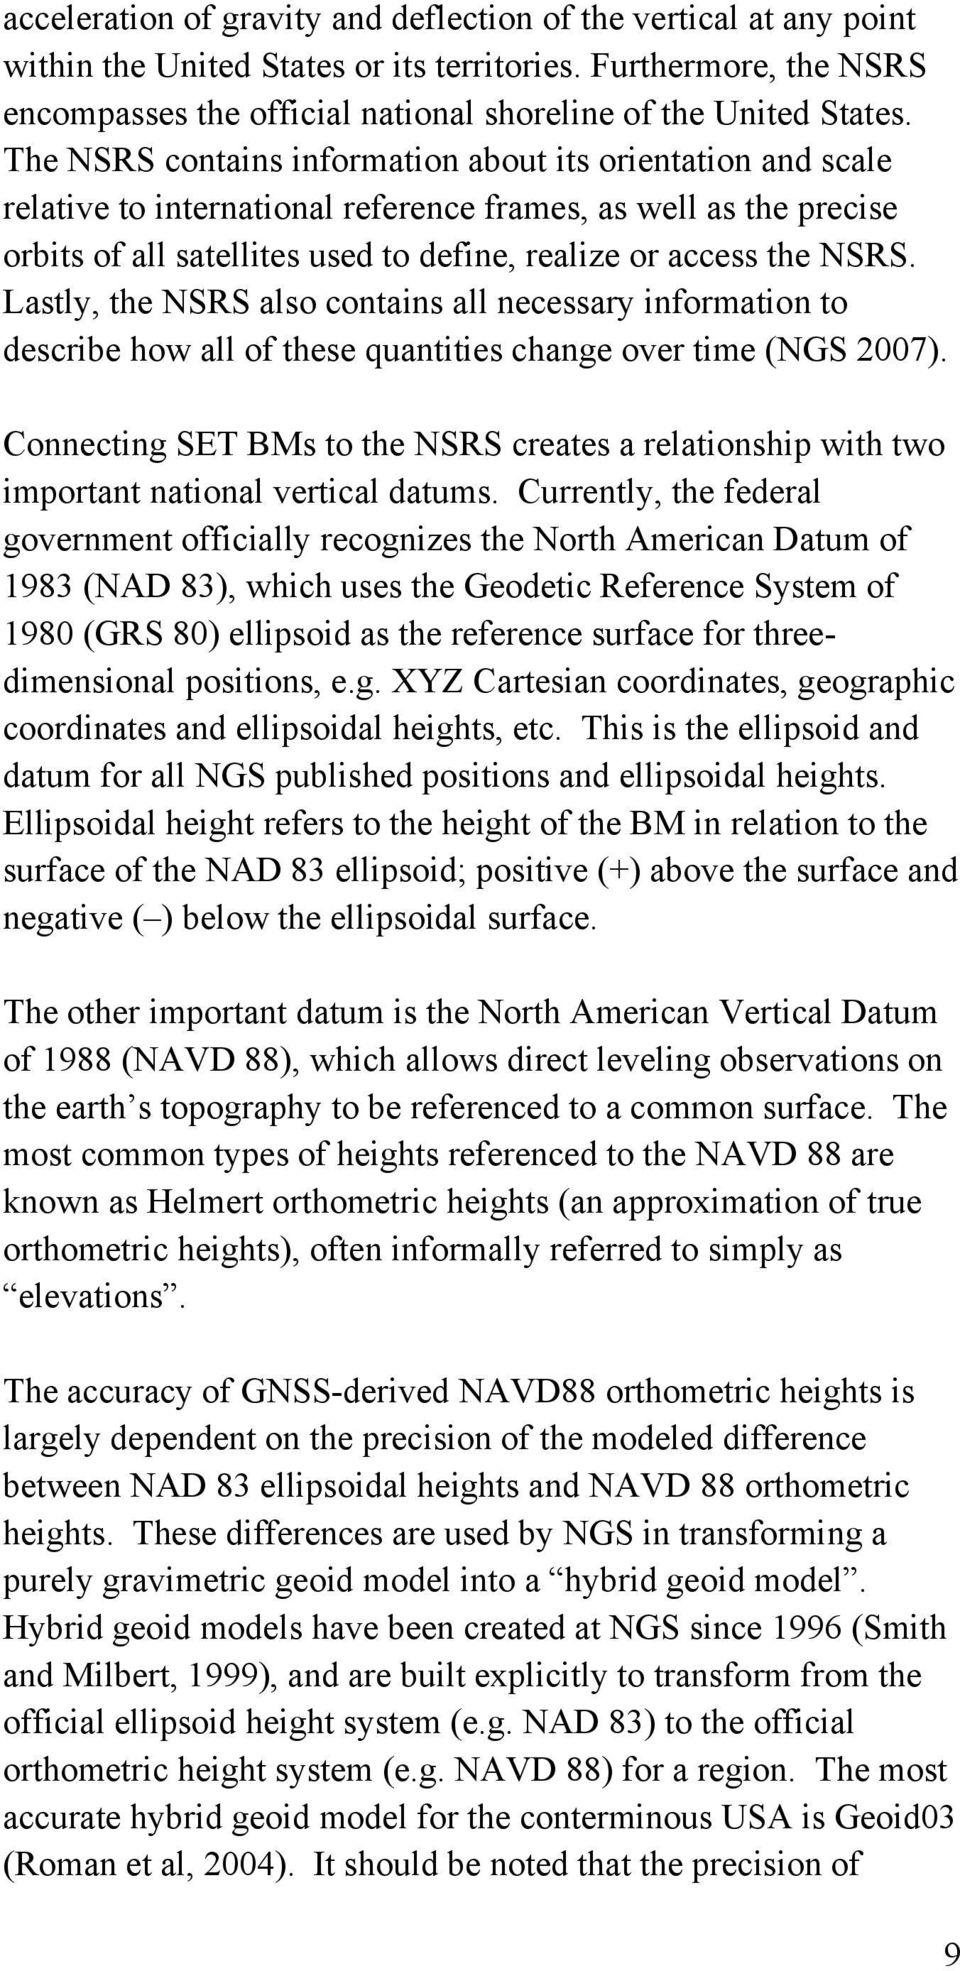 Lastly, the NSRS also contains all necessary information to describe how all of these quantities change over time (NGS 2007).